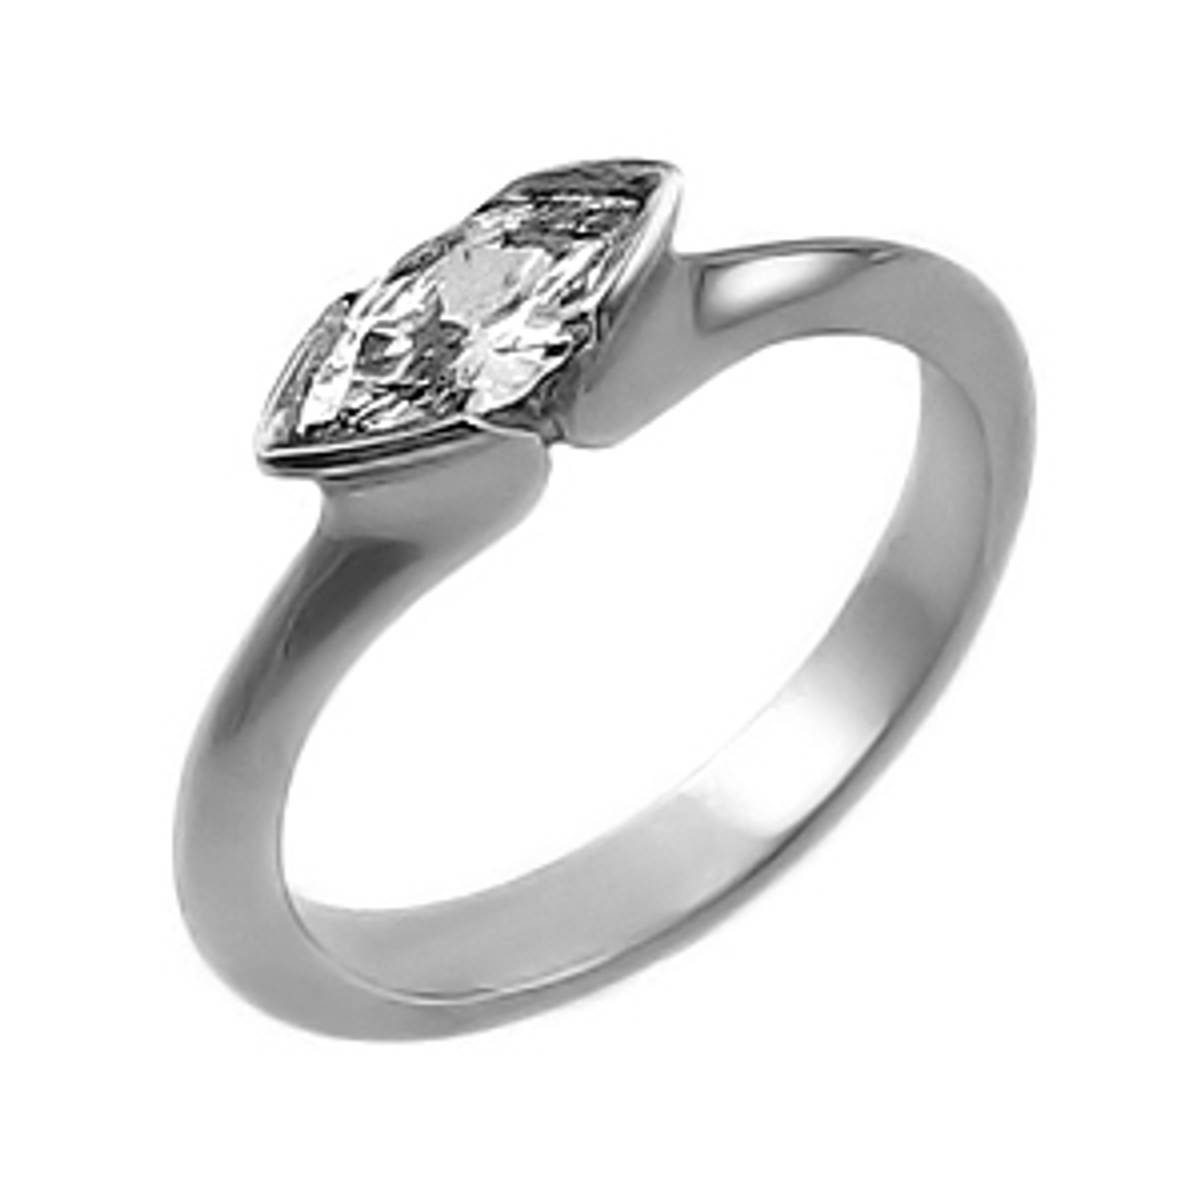 Single stone marquise diamond solitaire ring in platinum